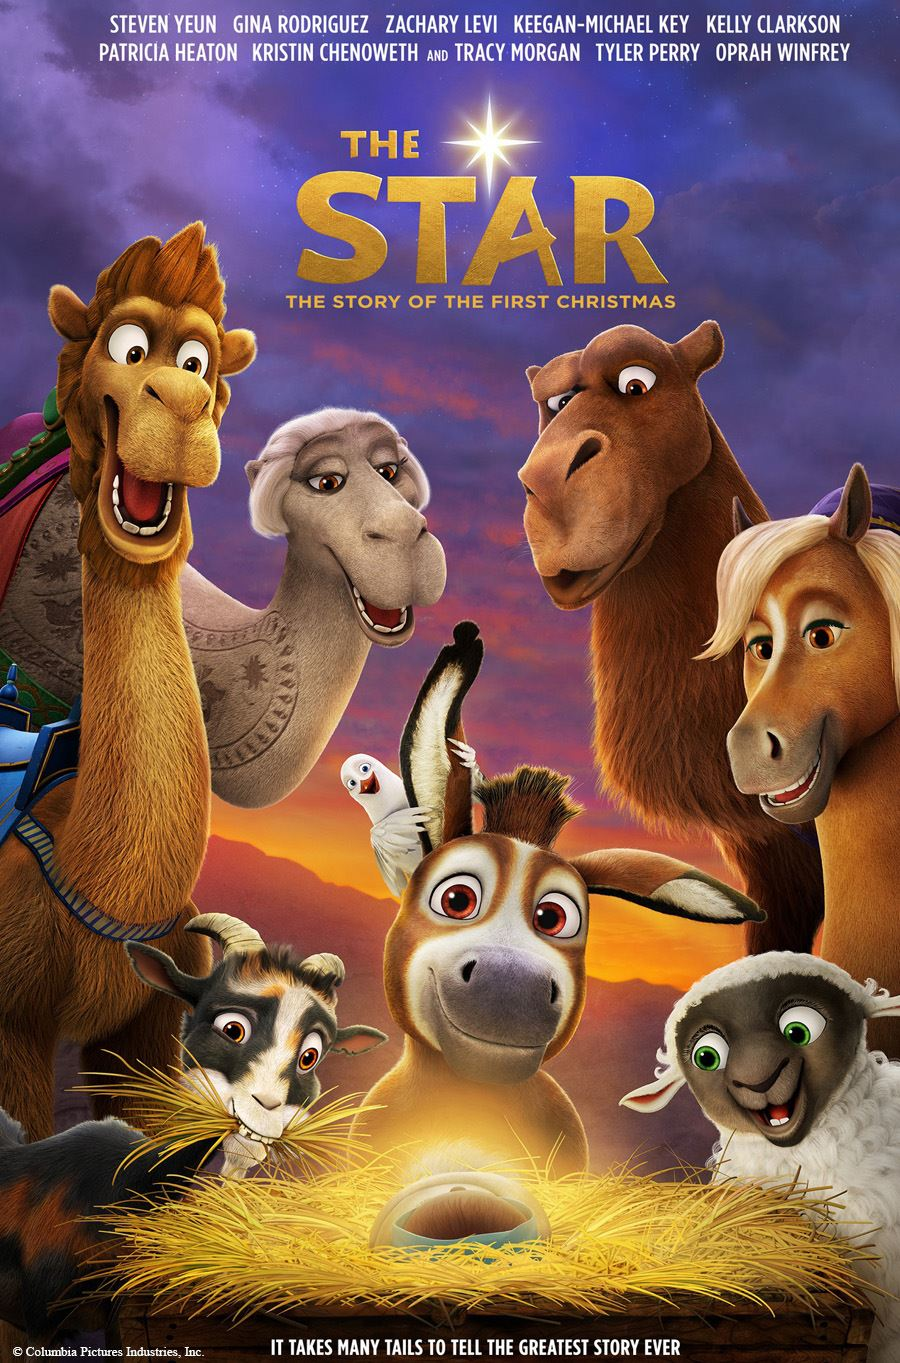 Image of &#34The Star&#34 movie poster.